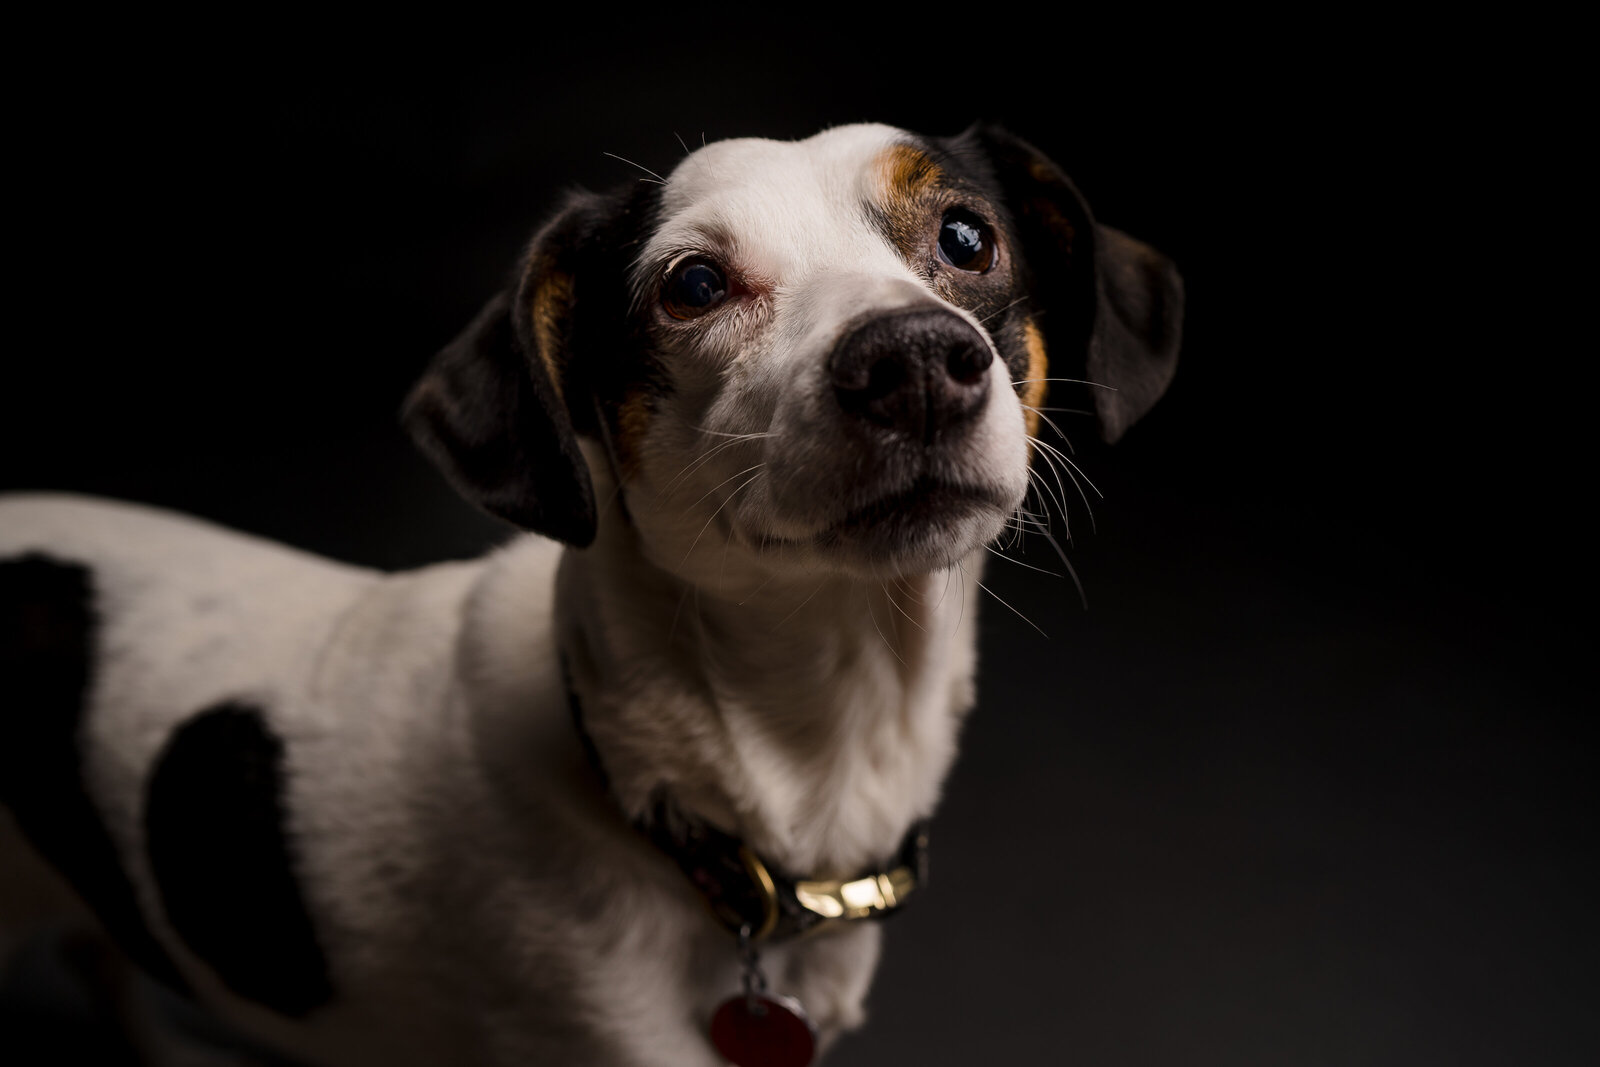 jack russell mix poses for a photo against a black background